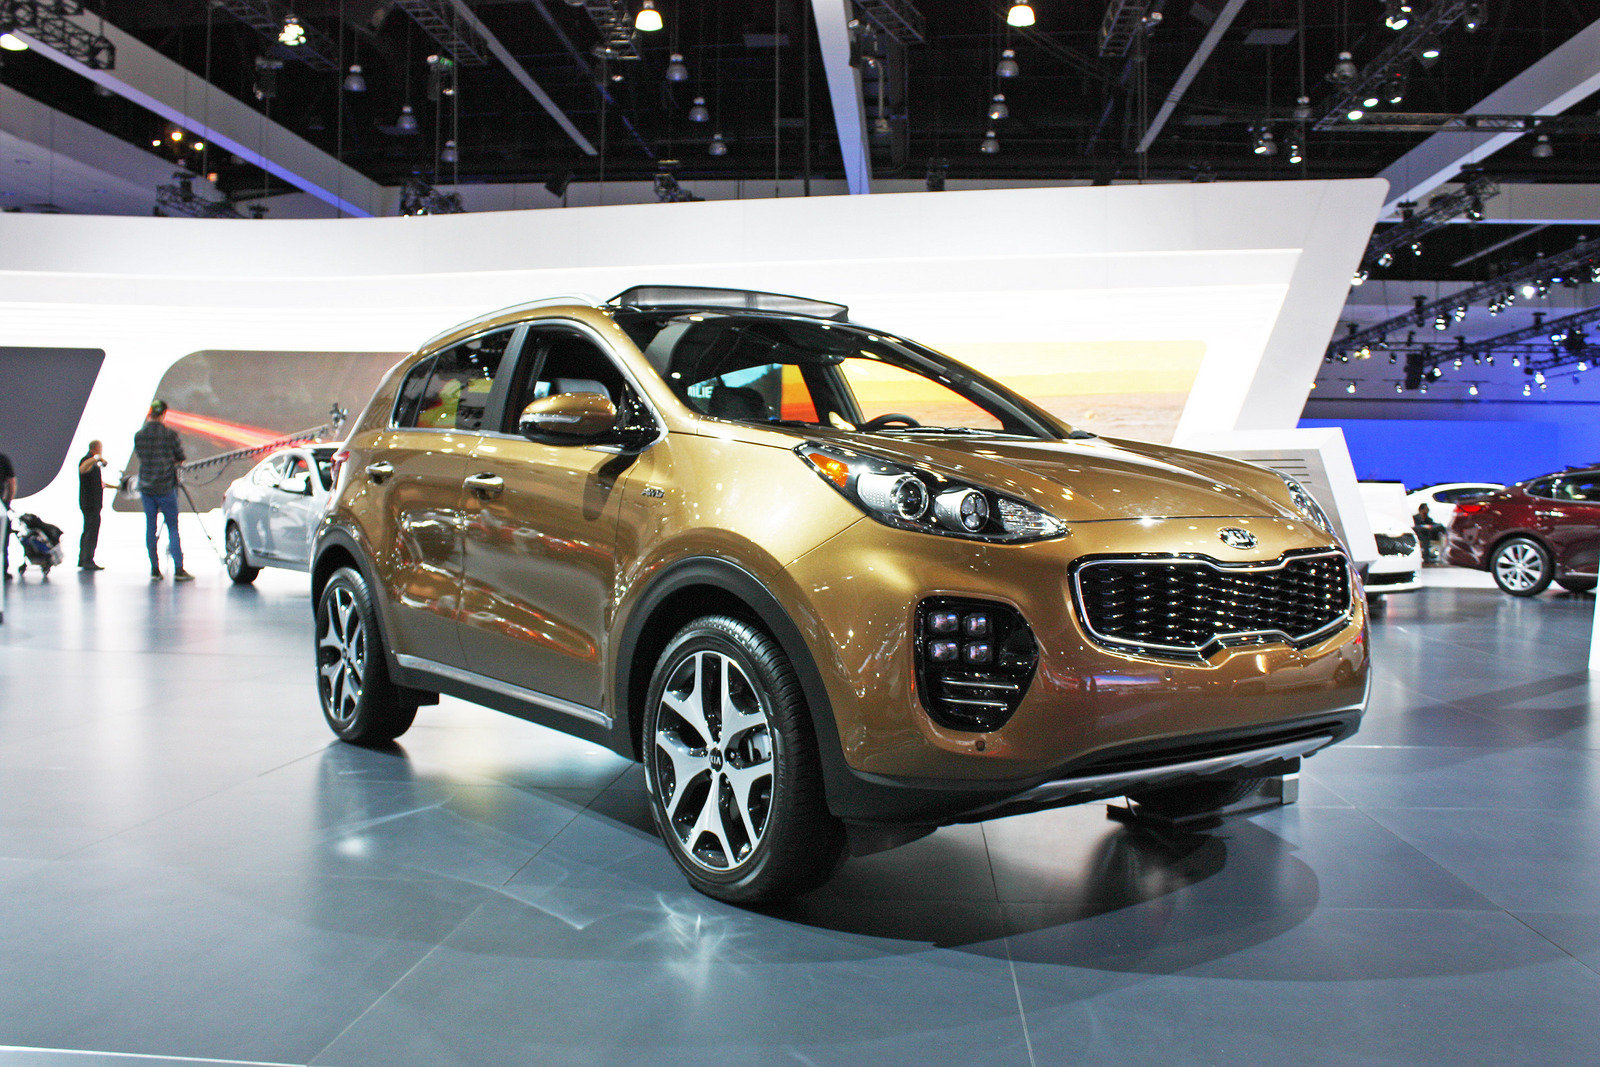 2014 kia sportage vs 2014 hyundai tucson photos autos post Bessette motors minot